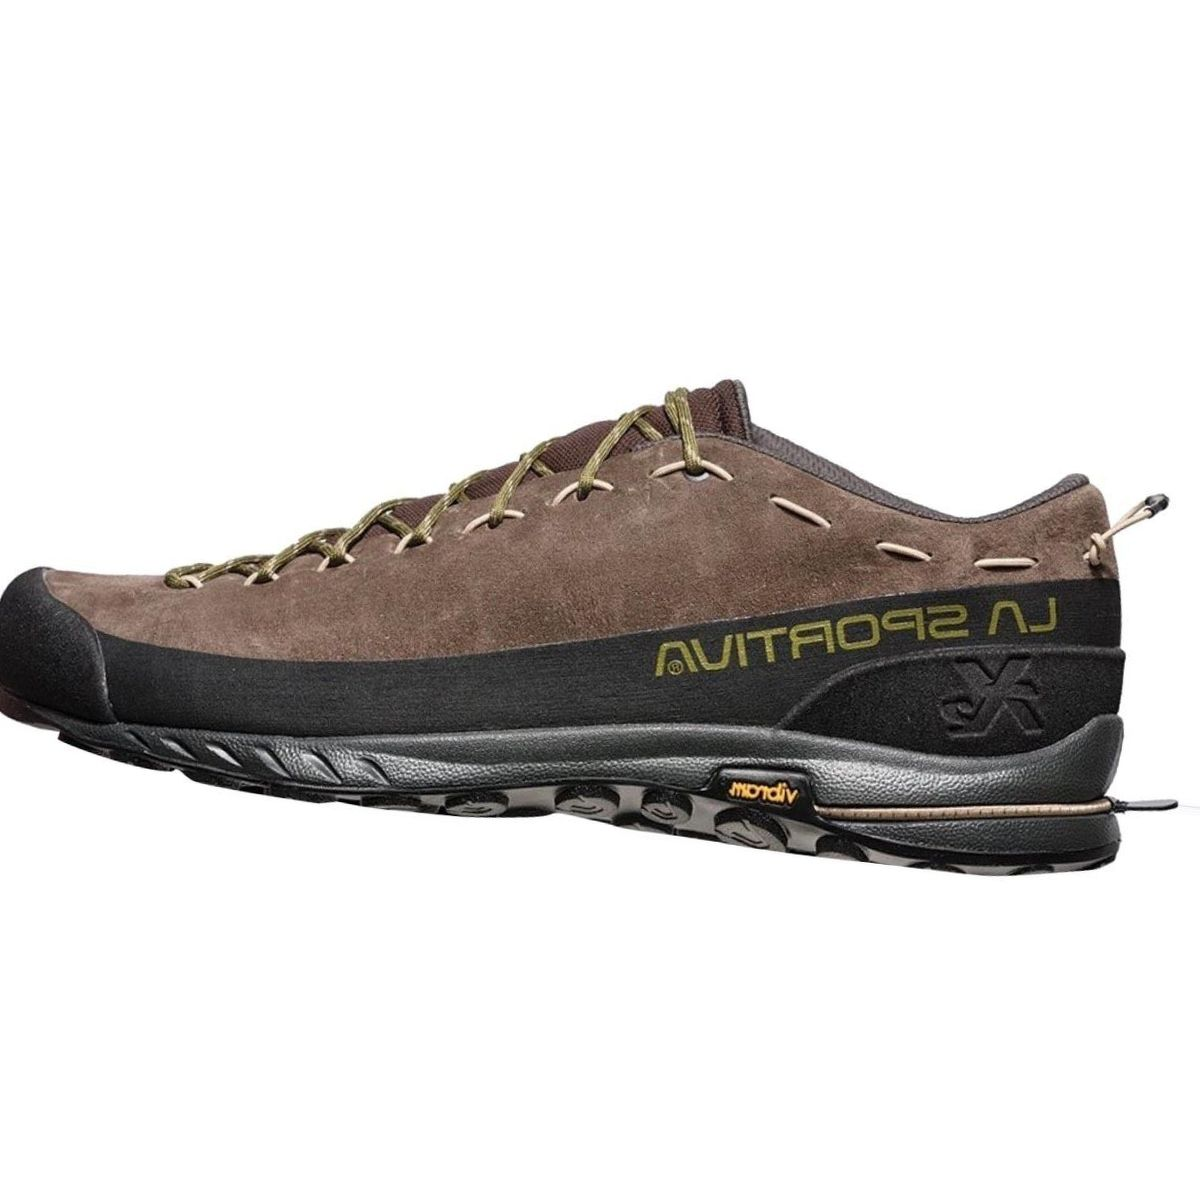 La Sportiva TX2 Leather Shoe - Men's